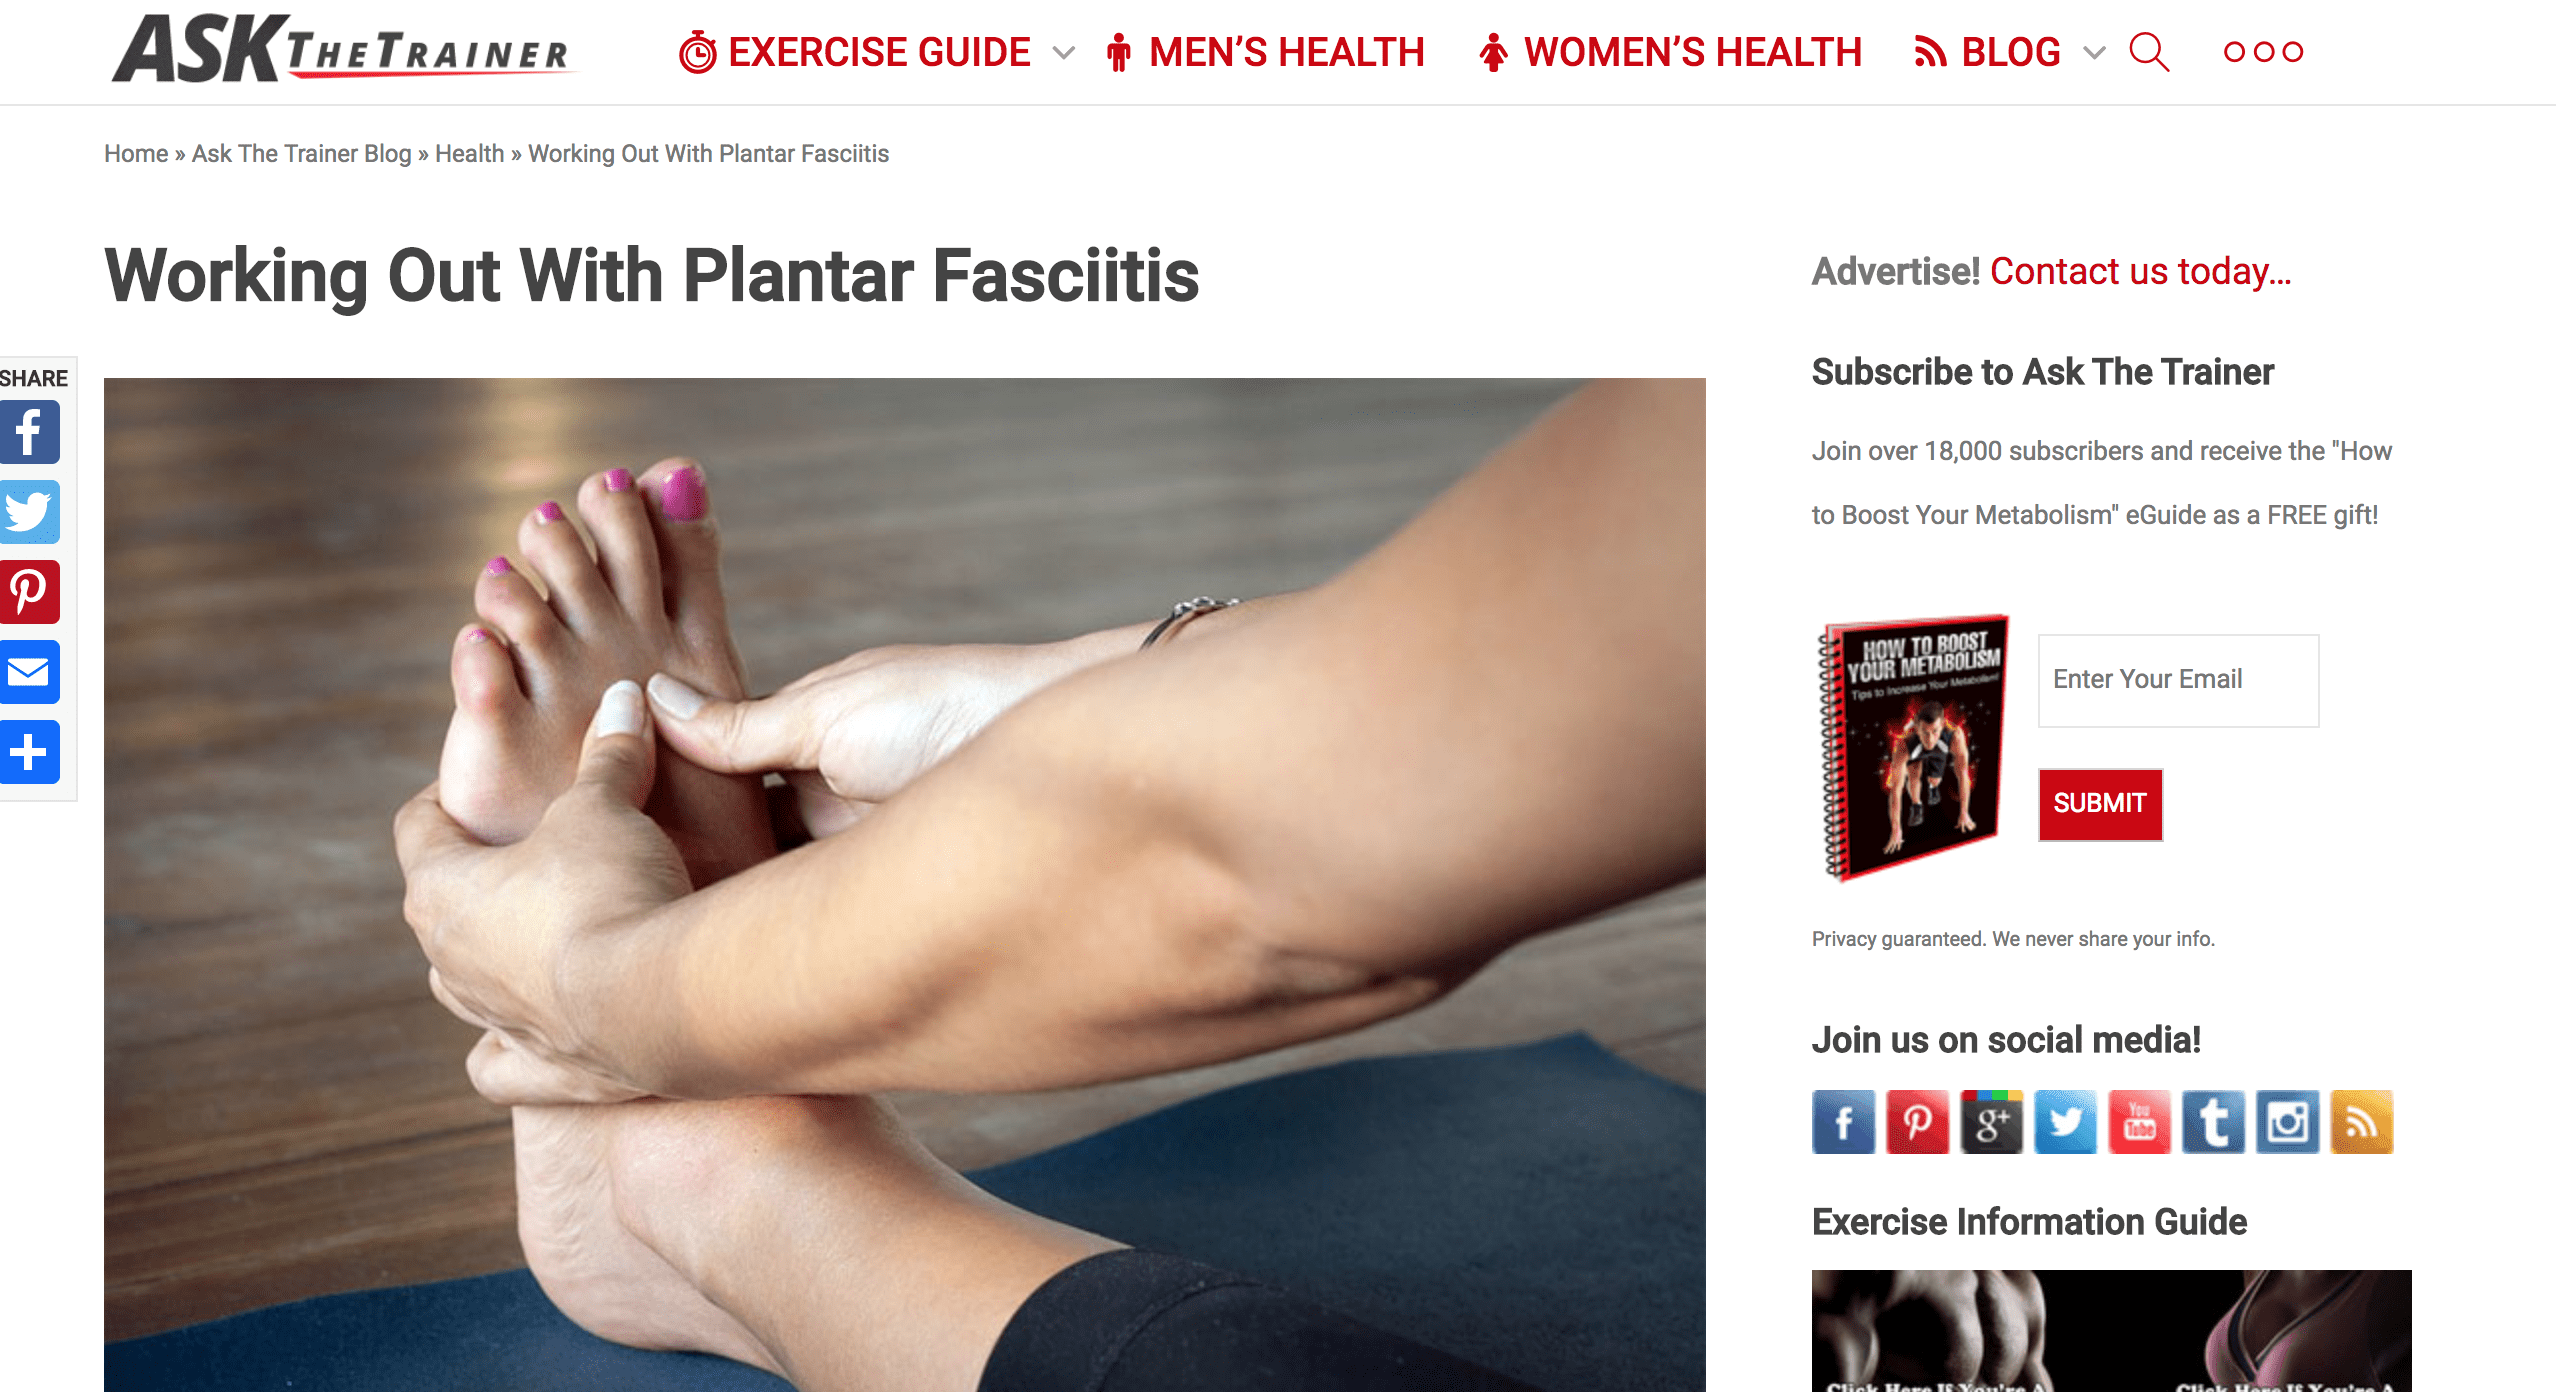 WORKING OUT WITH PLANTAR FASCIITIS